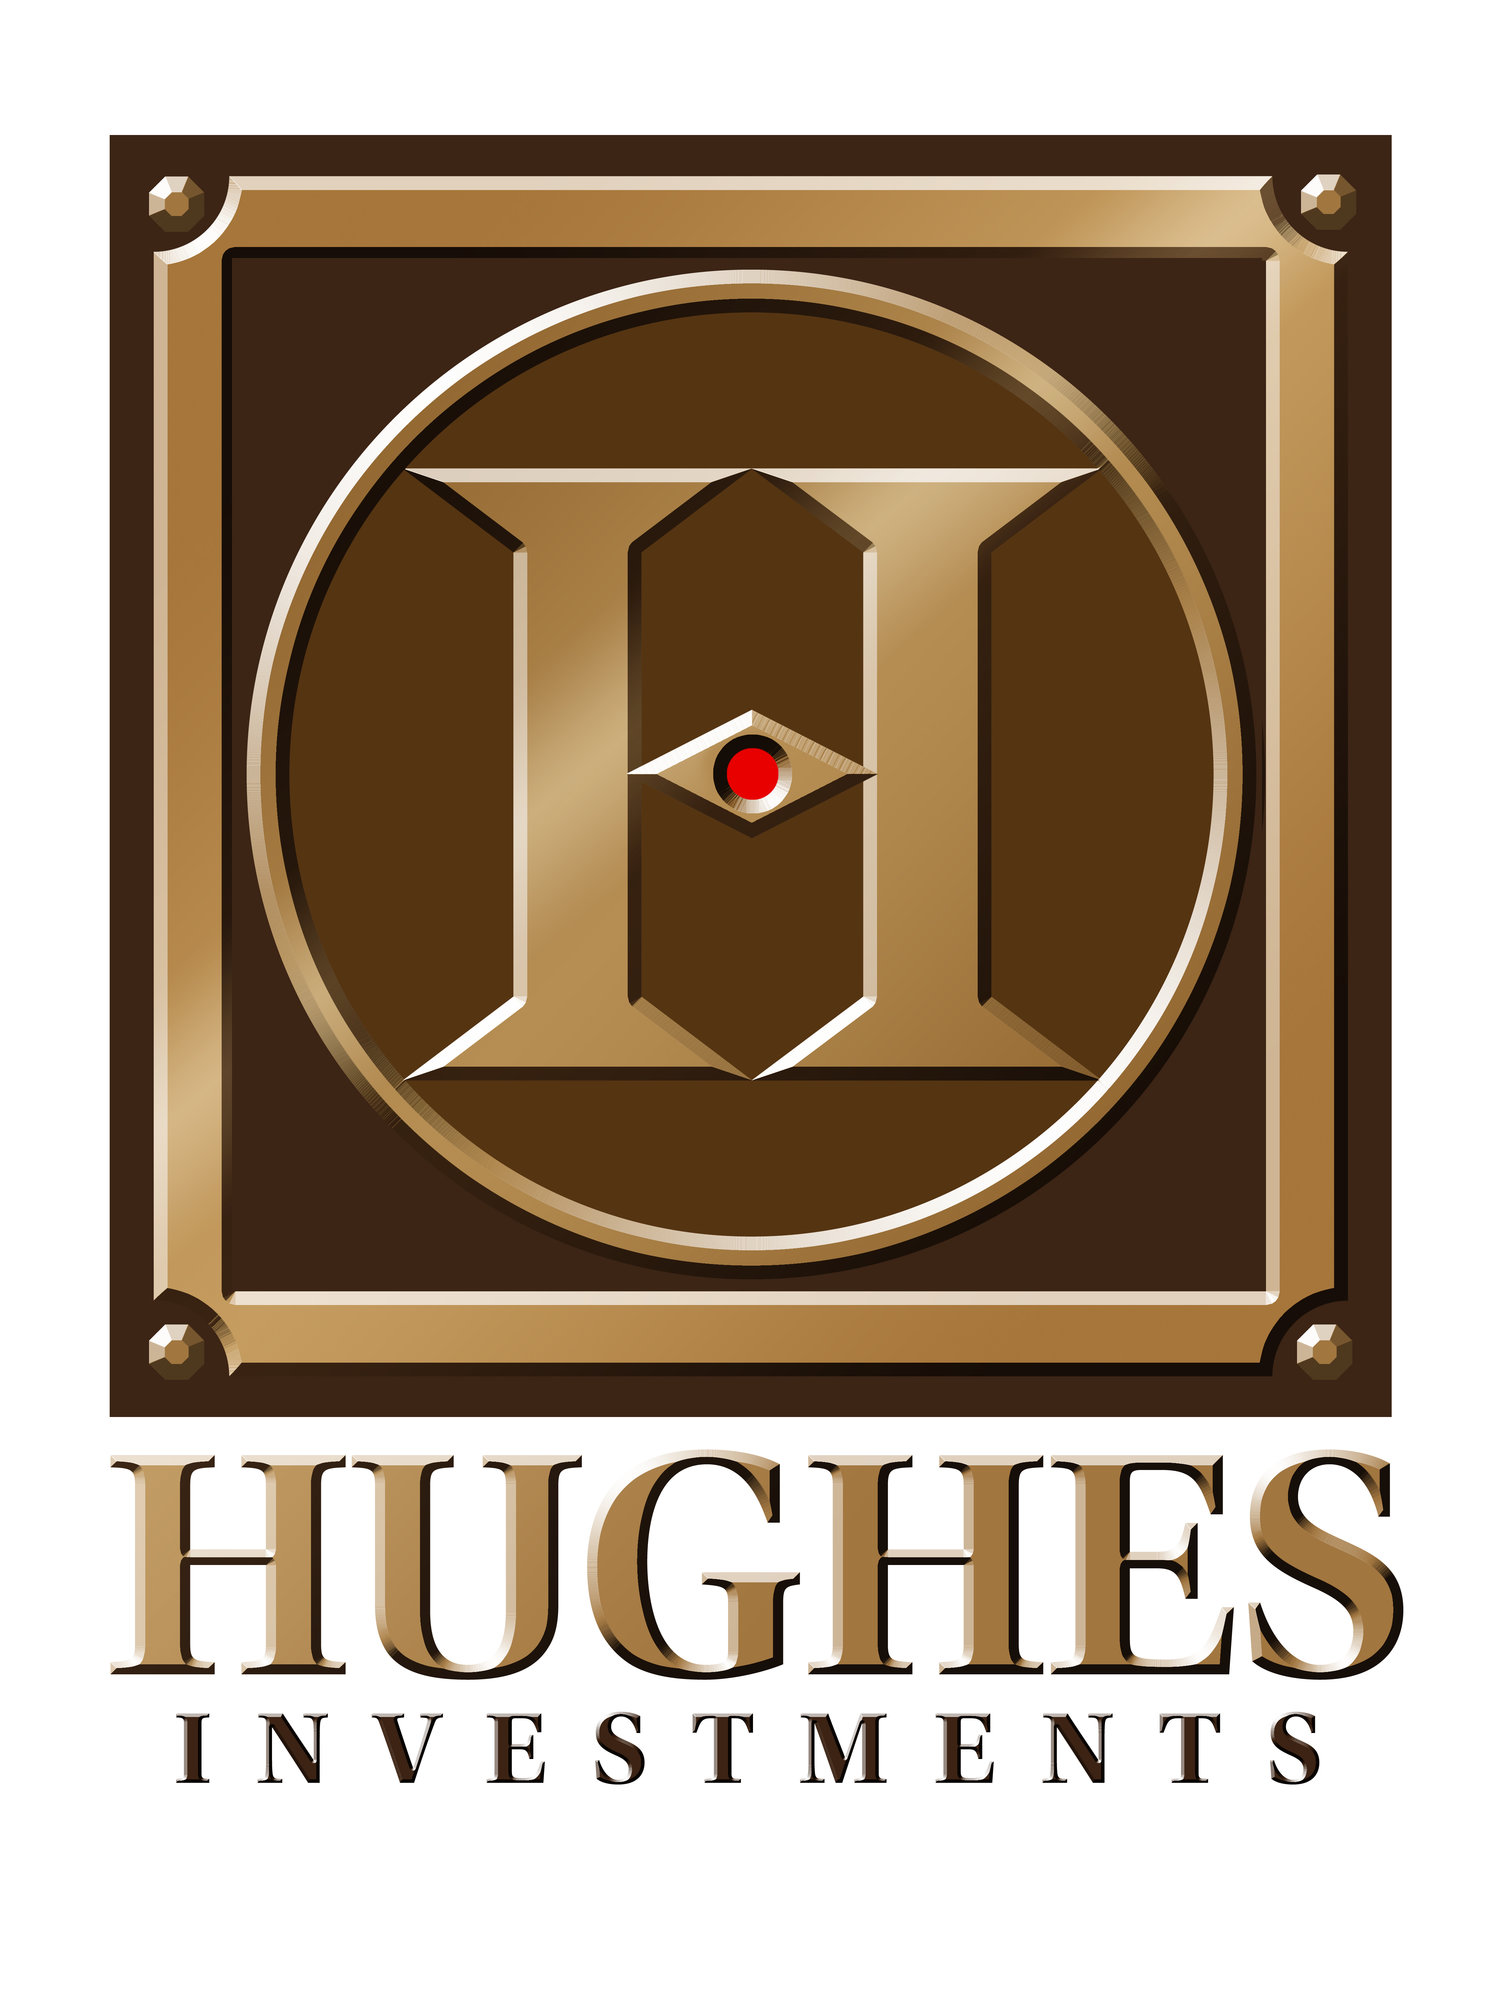 Hughes Investments